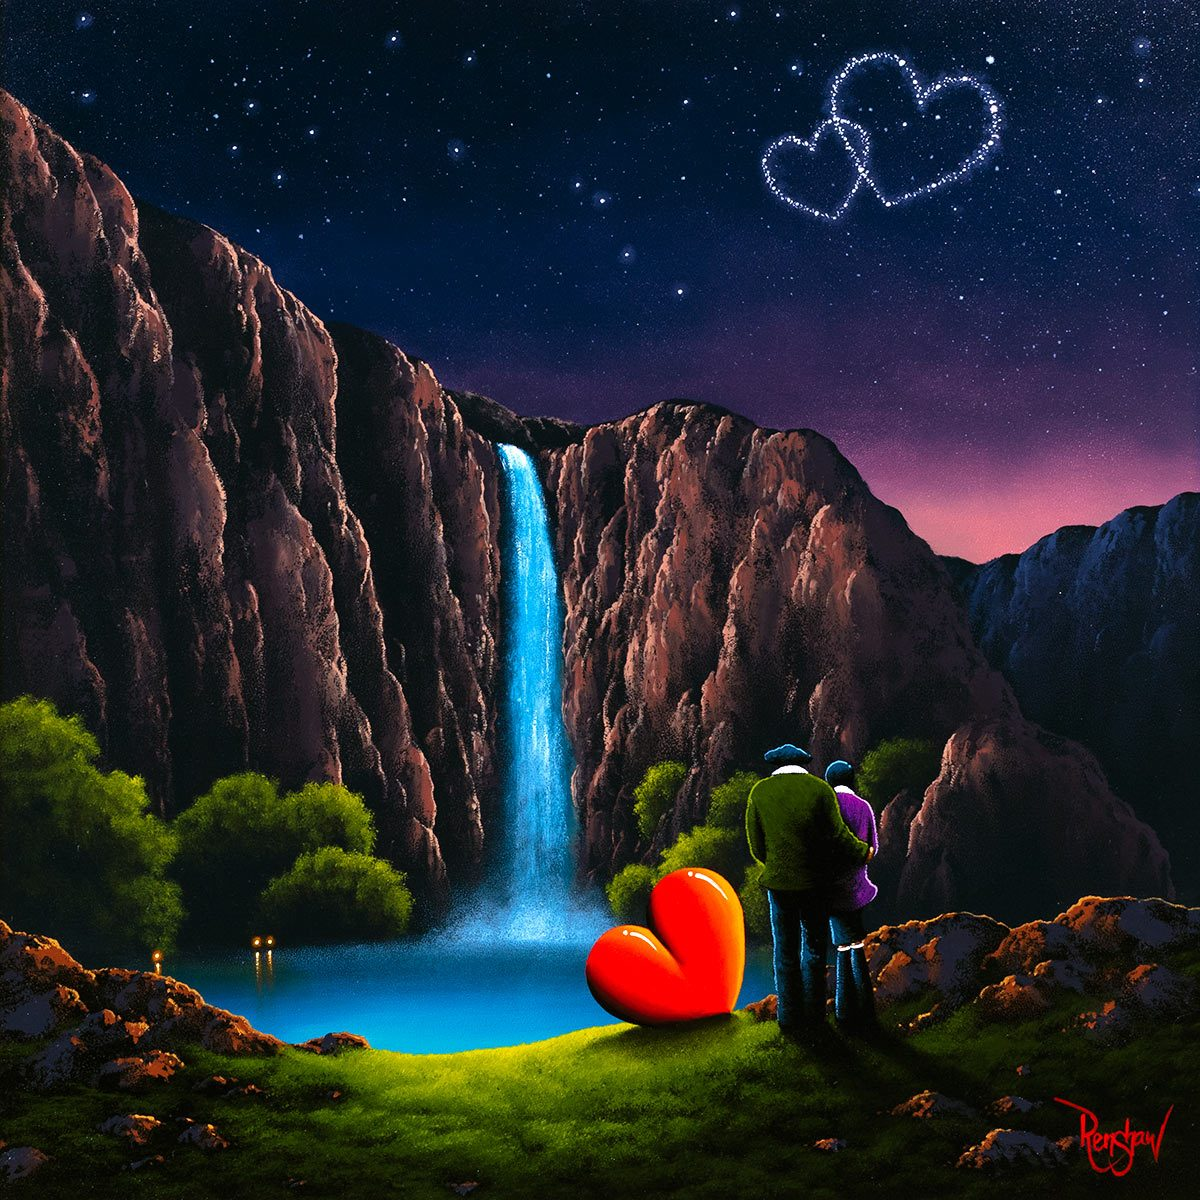 Waterfall Romance - Original David Renshaw Framed